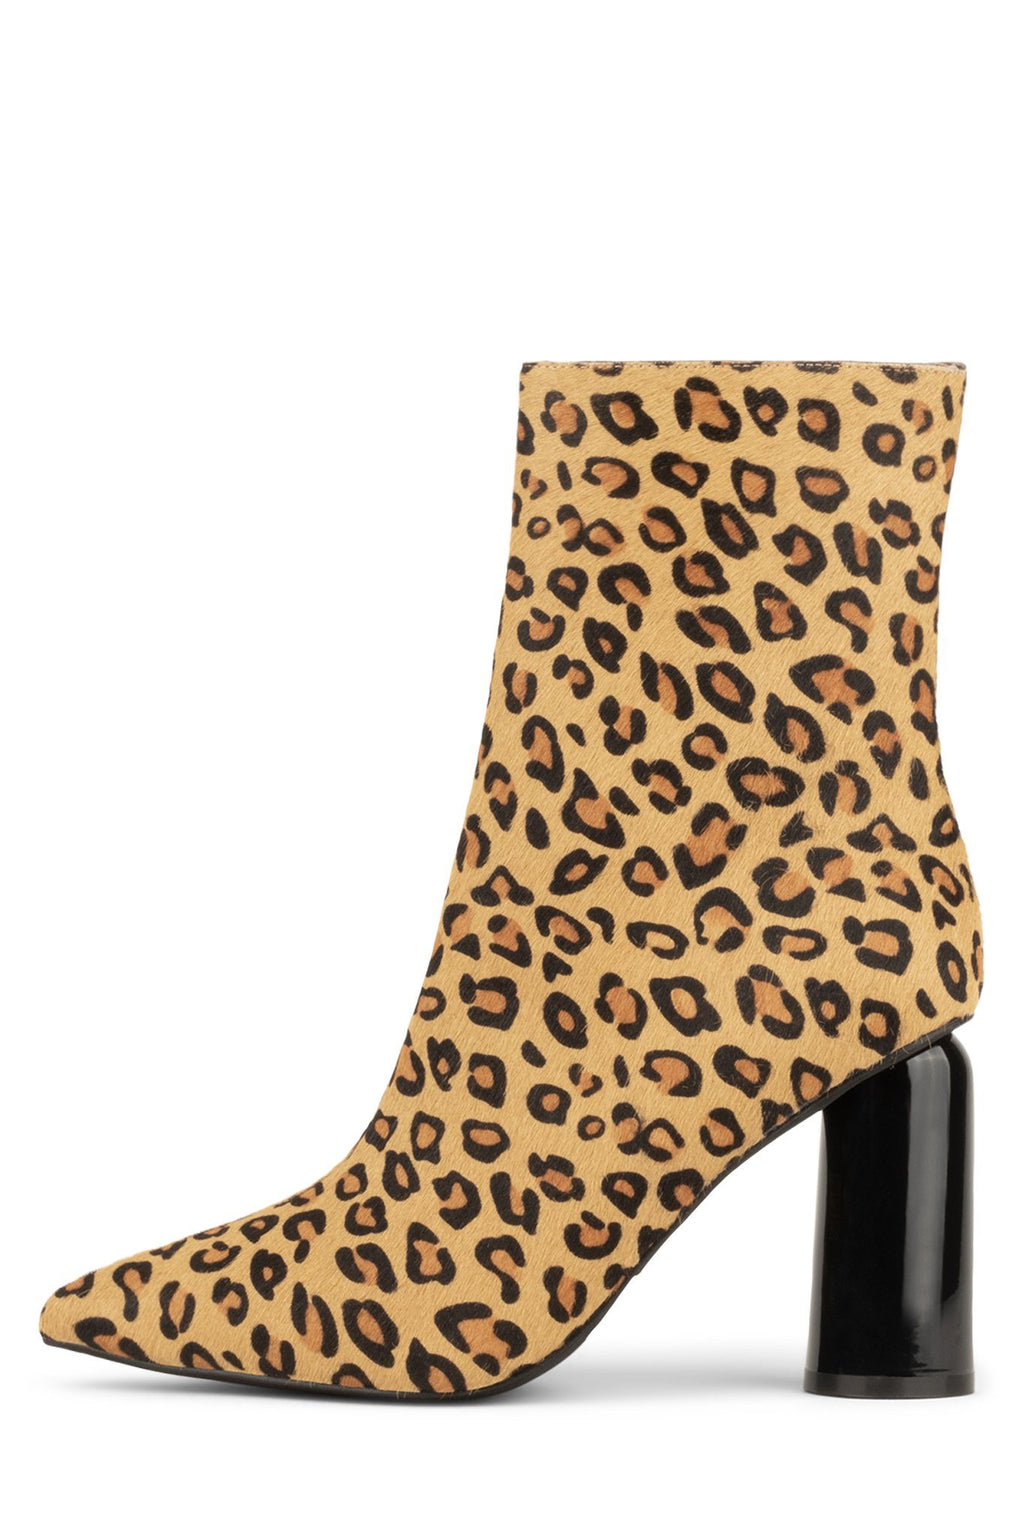 LUSTFUL-F Heeled Boot ST Tan Cheetah 6